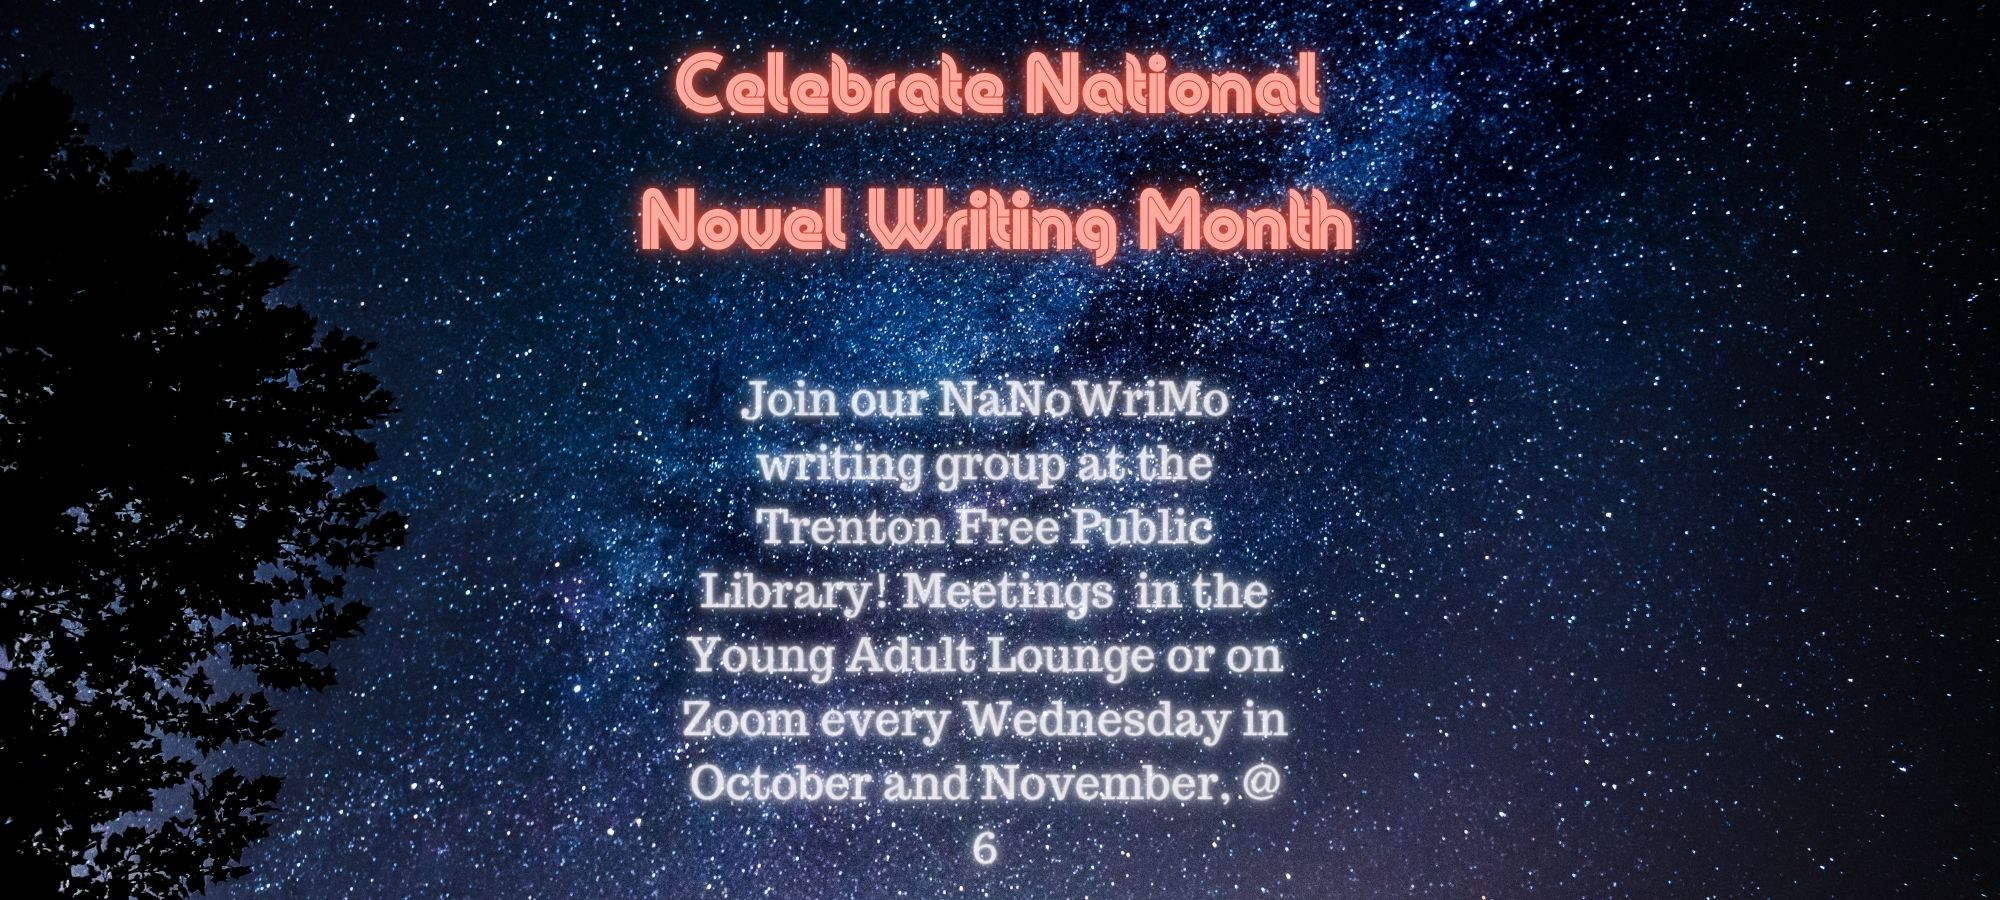 National Novel Writing Month Interest Sessions Every Wednesday at 6 PM In Young Adult Lounge Or On Zoom